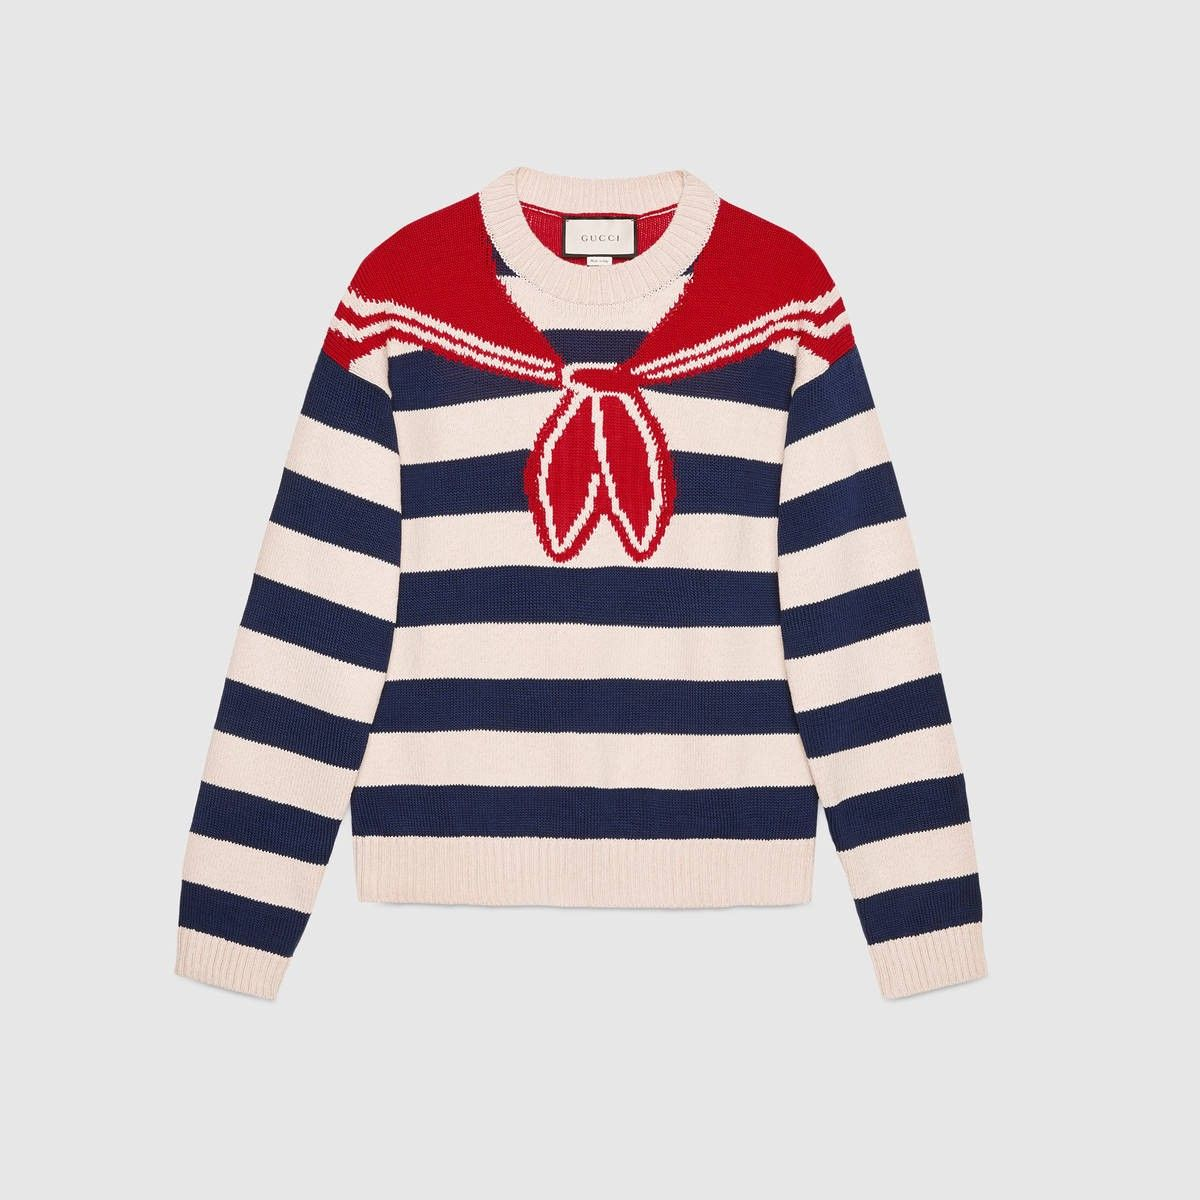 GUCCI Bandana Trompe L'Oeil Intarsia Sweater - Blue, White And Red ...